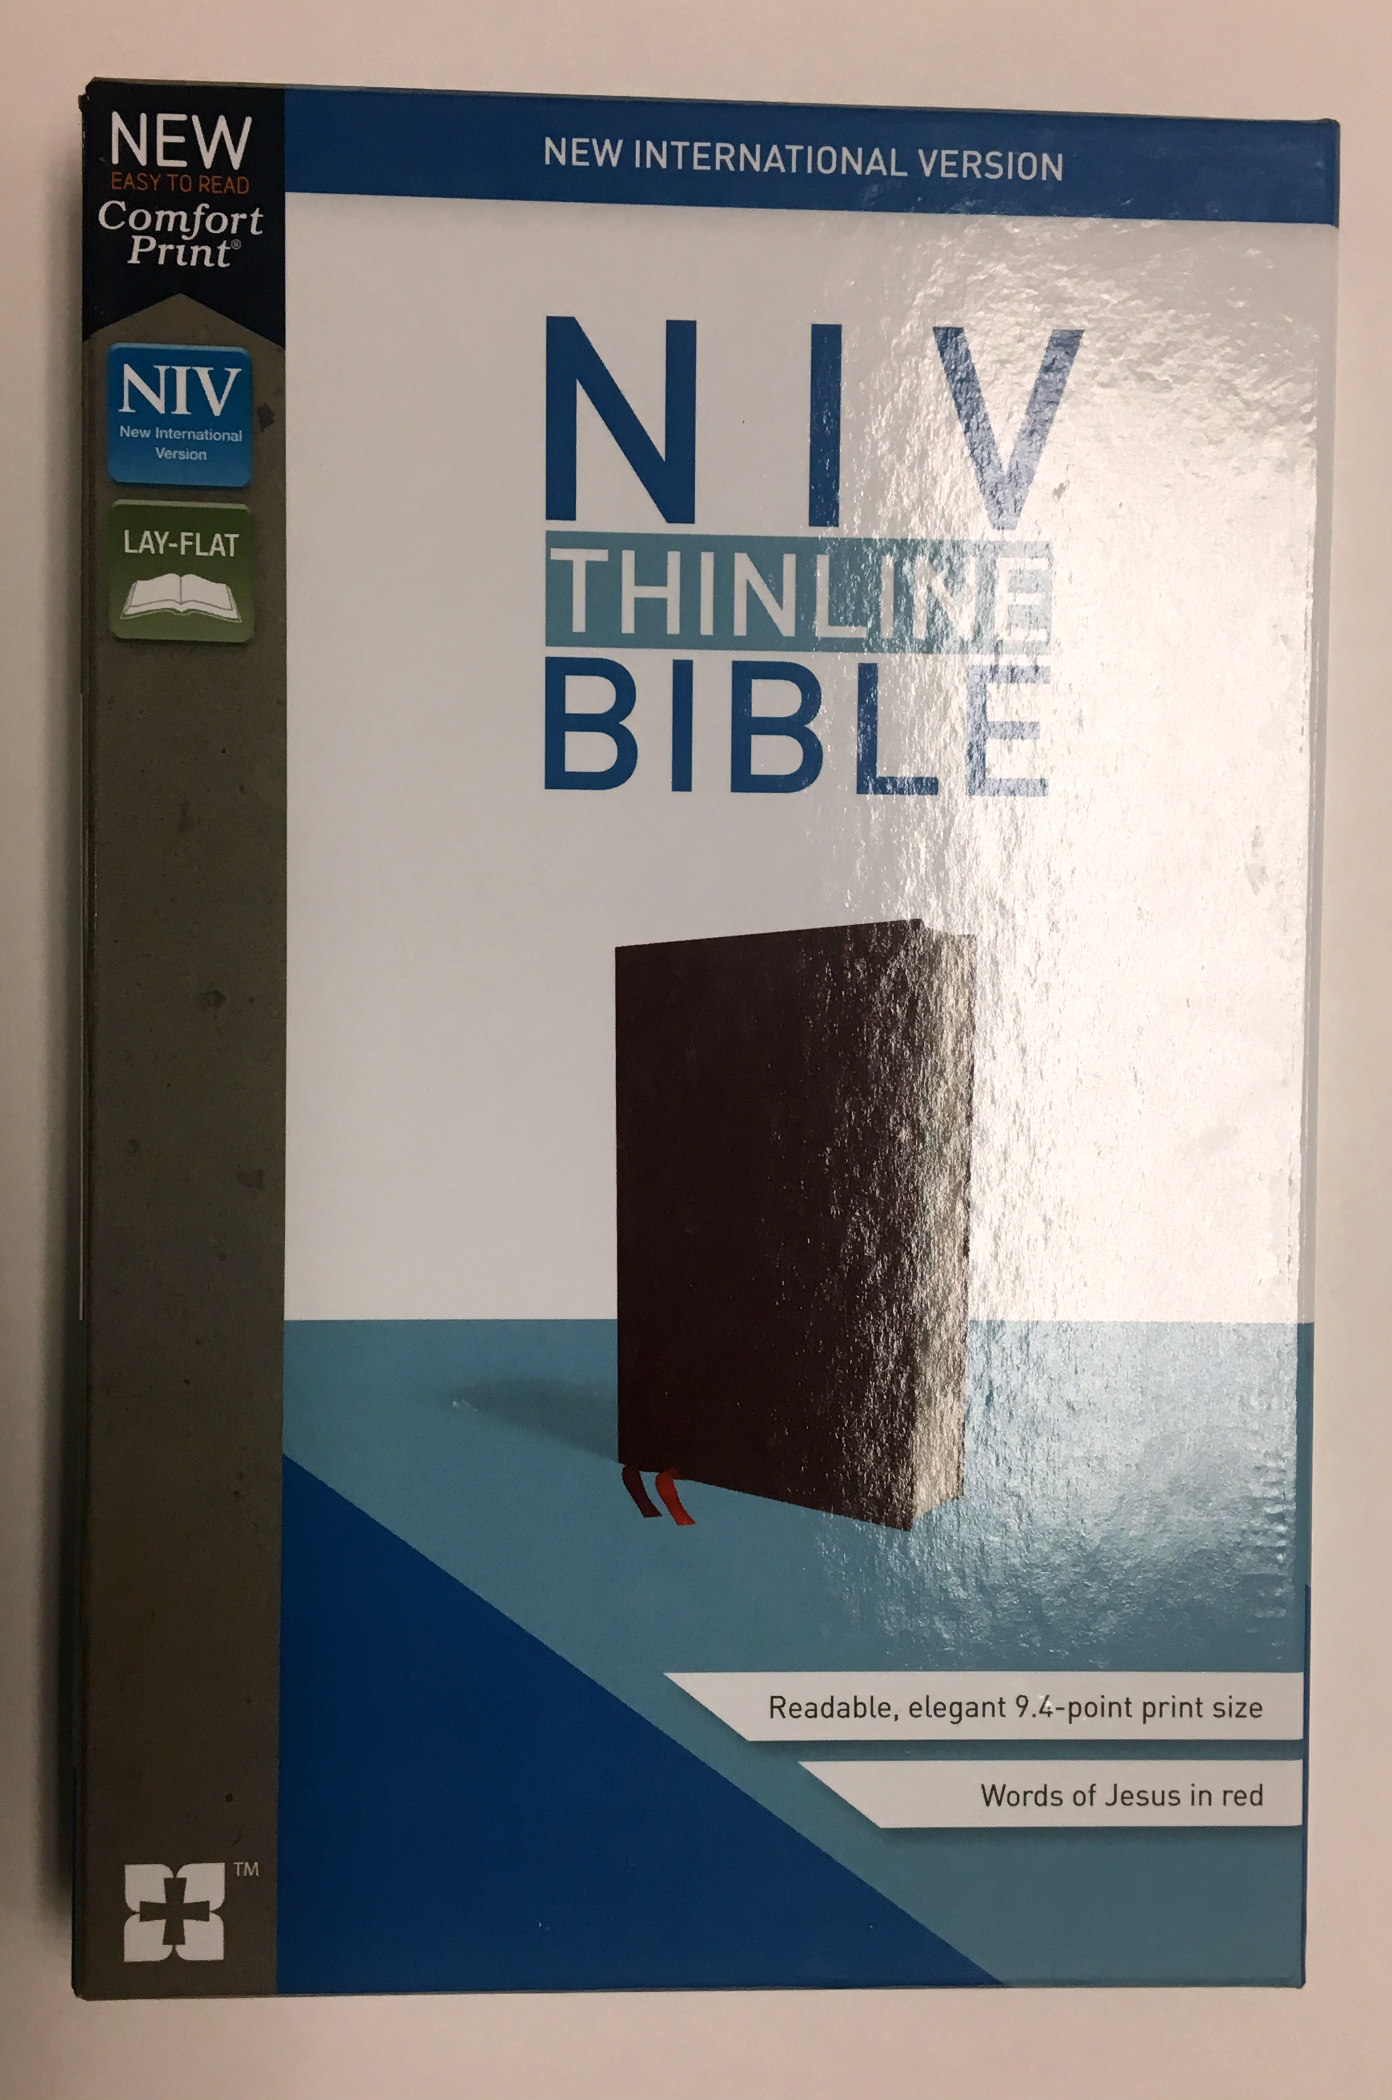 Alternative Image for the Bible with Clarke Imprint product